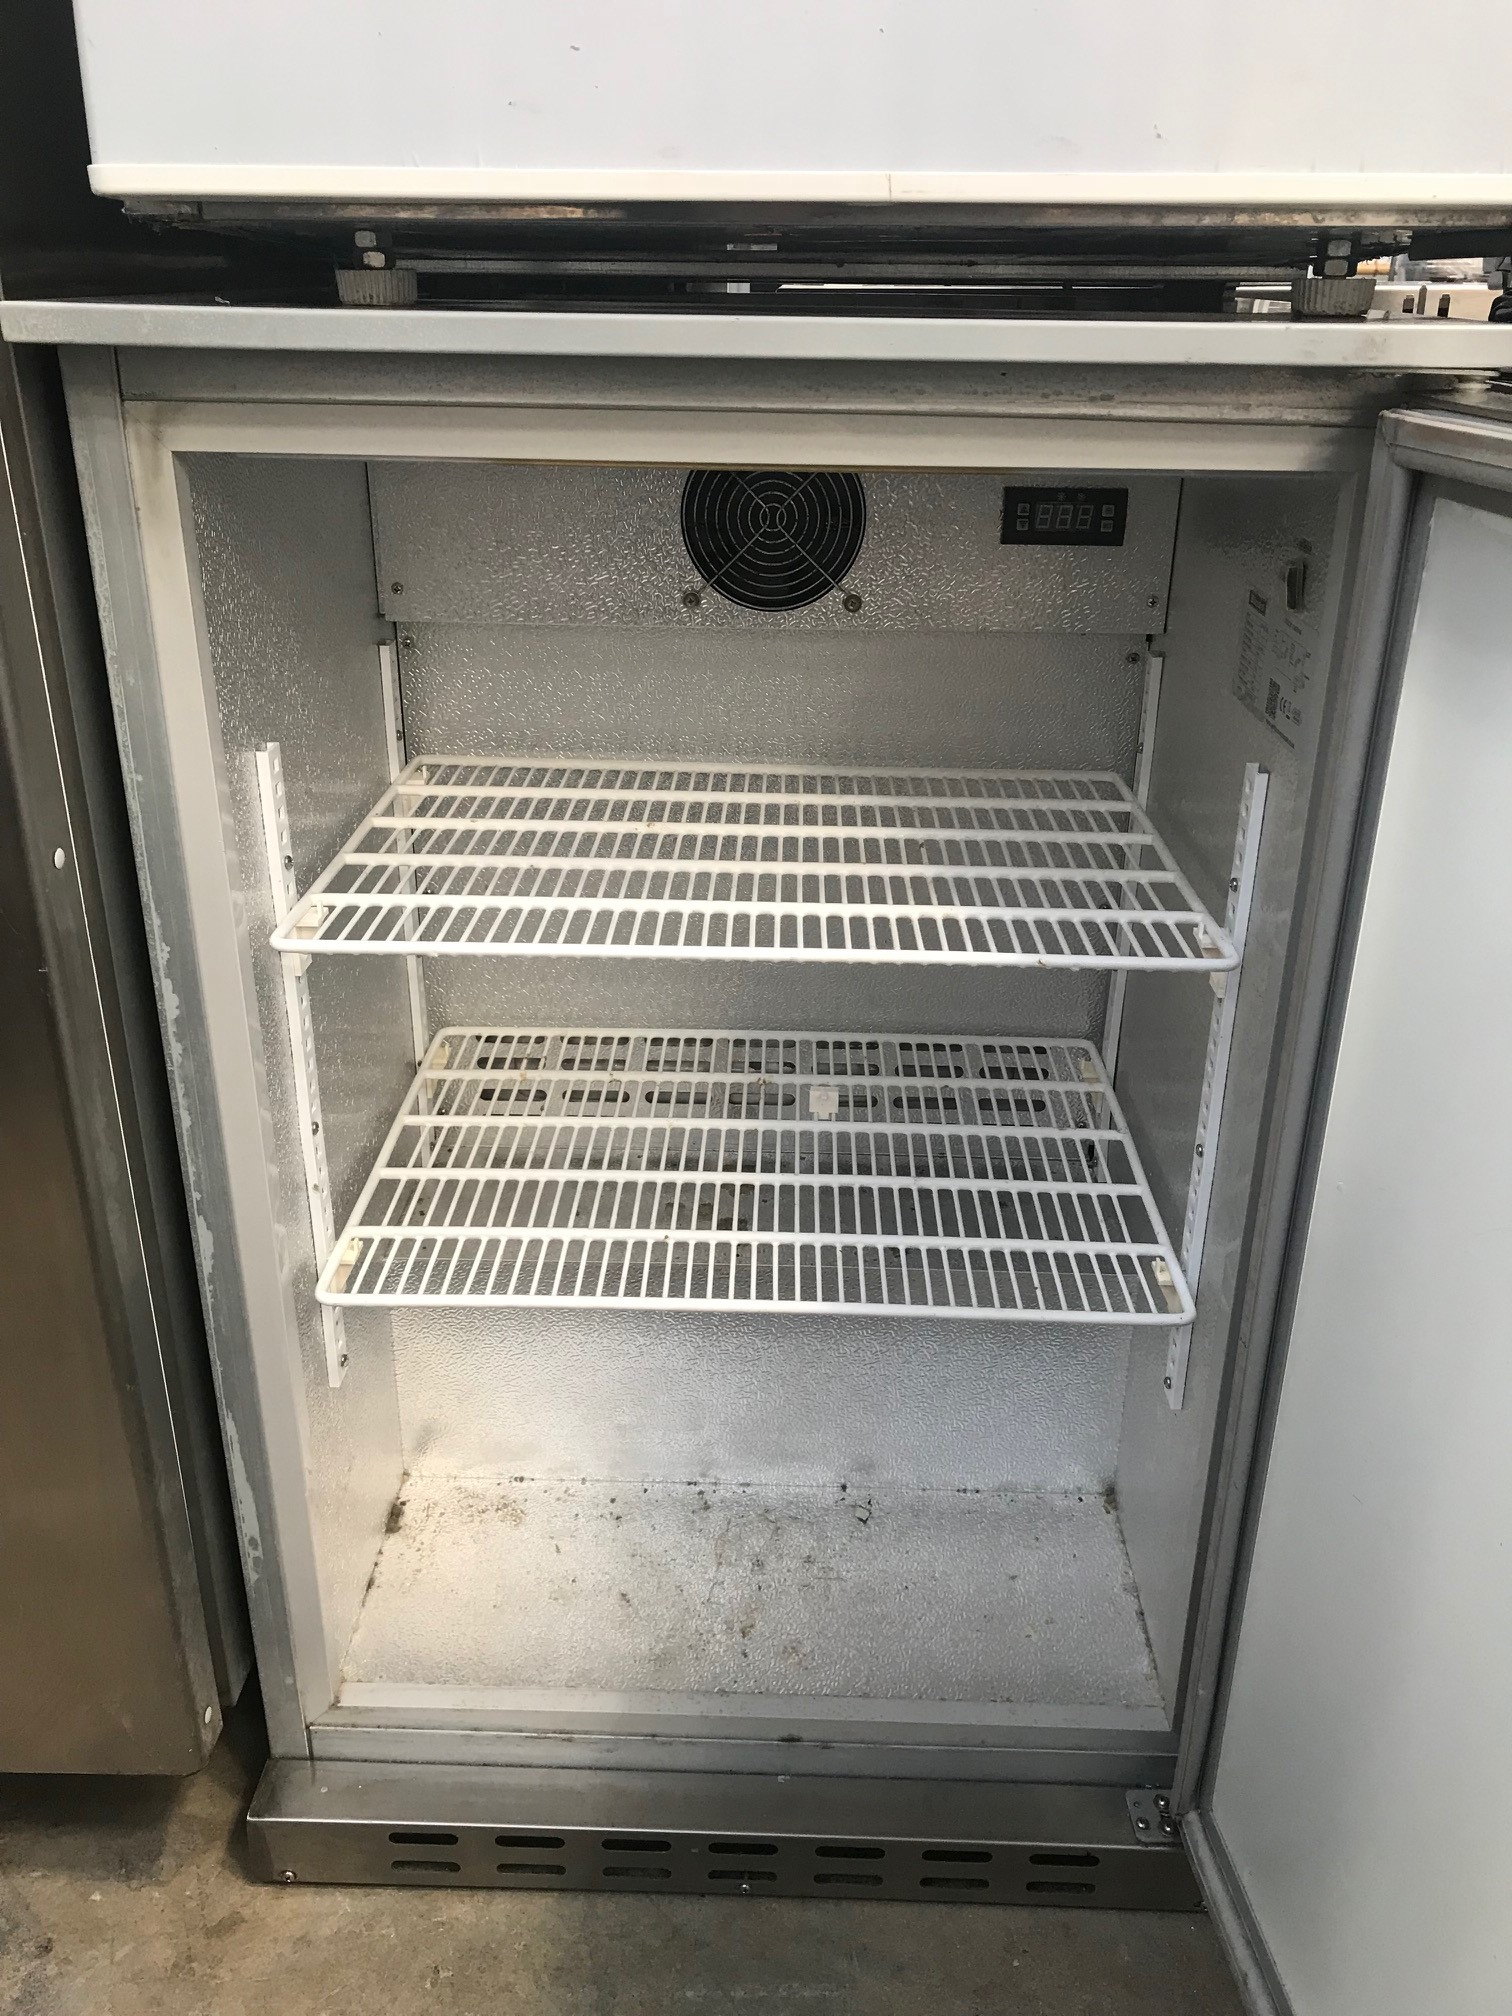 Lot 21 - Blizzard Bz-bar1ss Single door Back bar counter Back Bar Chiller Glass doors that can hold 130